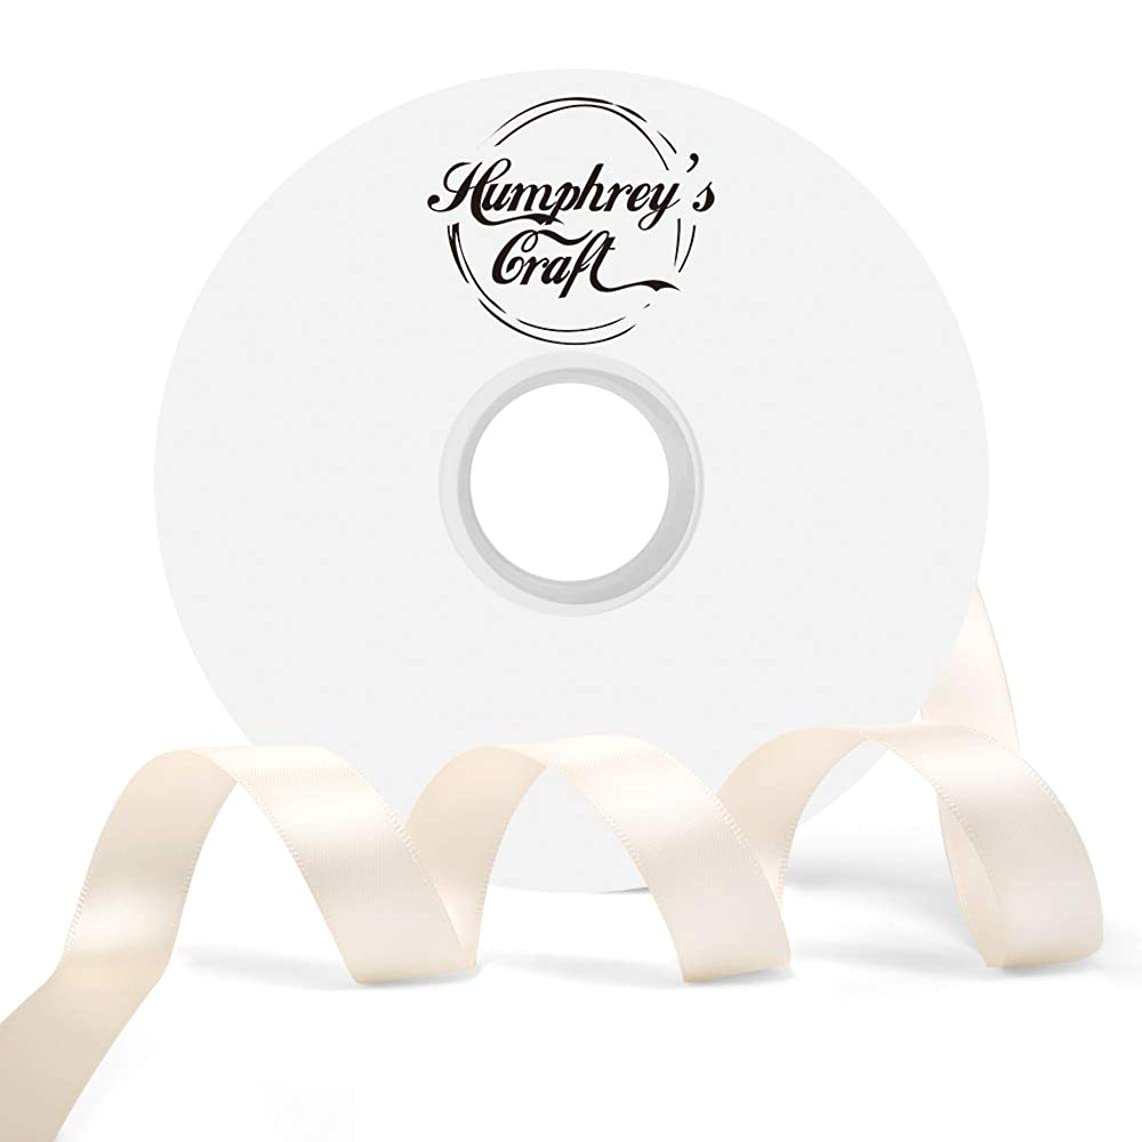 Humphrey's Craft 5/8-inch Double Face Solid Satin Ribbon 100% Polyester Ribbon Roll-50 Yard (Ivory)